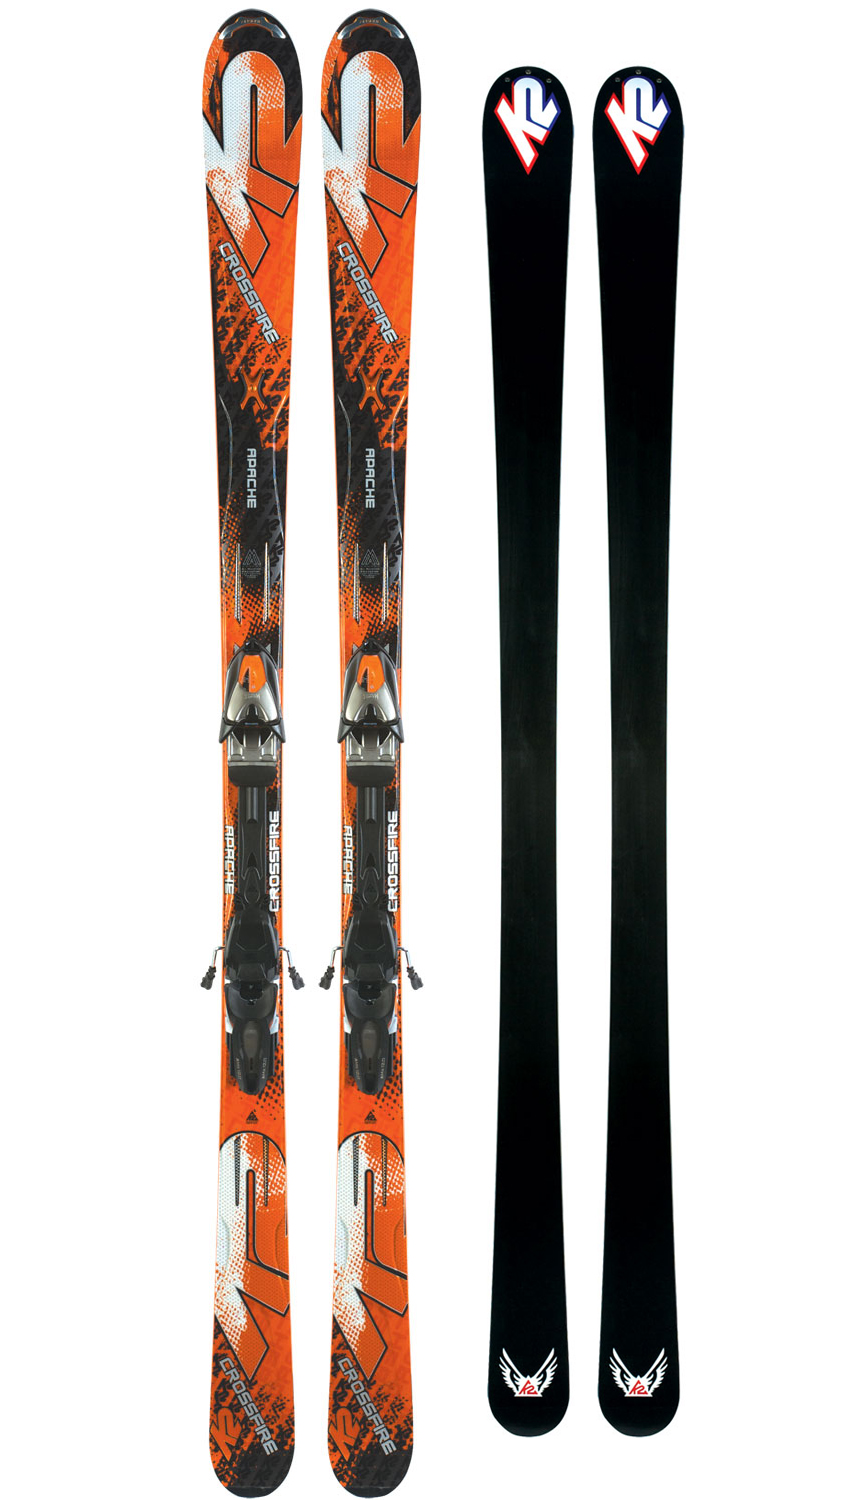 Ski The new Crossfire gains an additional 4 mm underfoot going to 74 mm giving it even more versatility in varied conditions with the same precision and accuracy on groomers that you have come to expect from this model. The Crossfire is the only ski in the Apache line that comes with ABS sidewall construction for the ultimate performance and hold while laying down arcs on firmer terrain. Key Features of the K2 Apache Crossfire Skis w/ Marker MX 12.0 Bindings: MOD Monic MOD Technology Performance: Ungroomed 40% Groomed 60% Radius: Radius: 16m@177 Construction: Metal Laminate ABS Sidewall Core: Fir/Aspen - $759.95